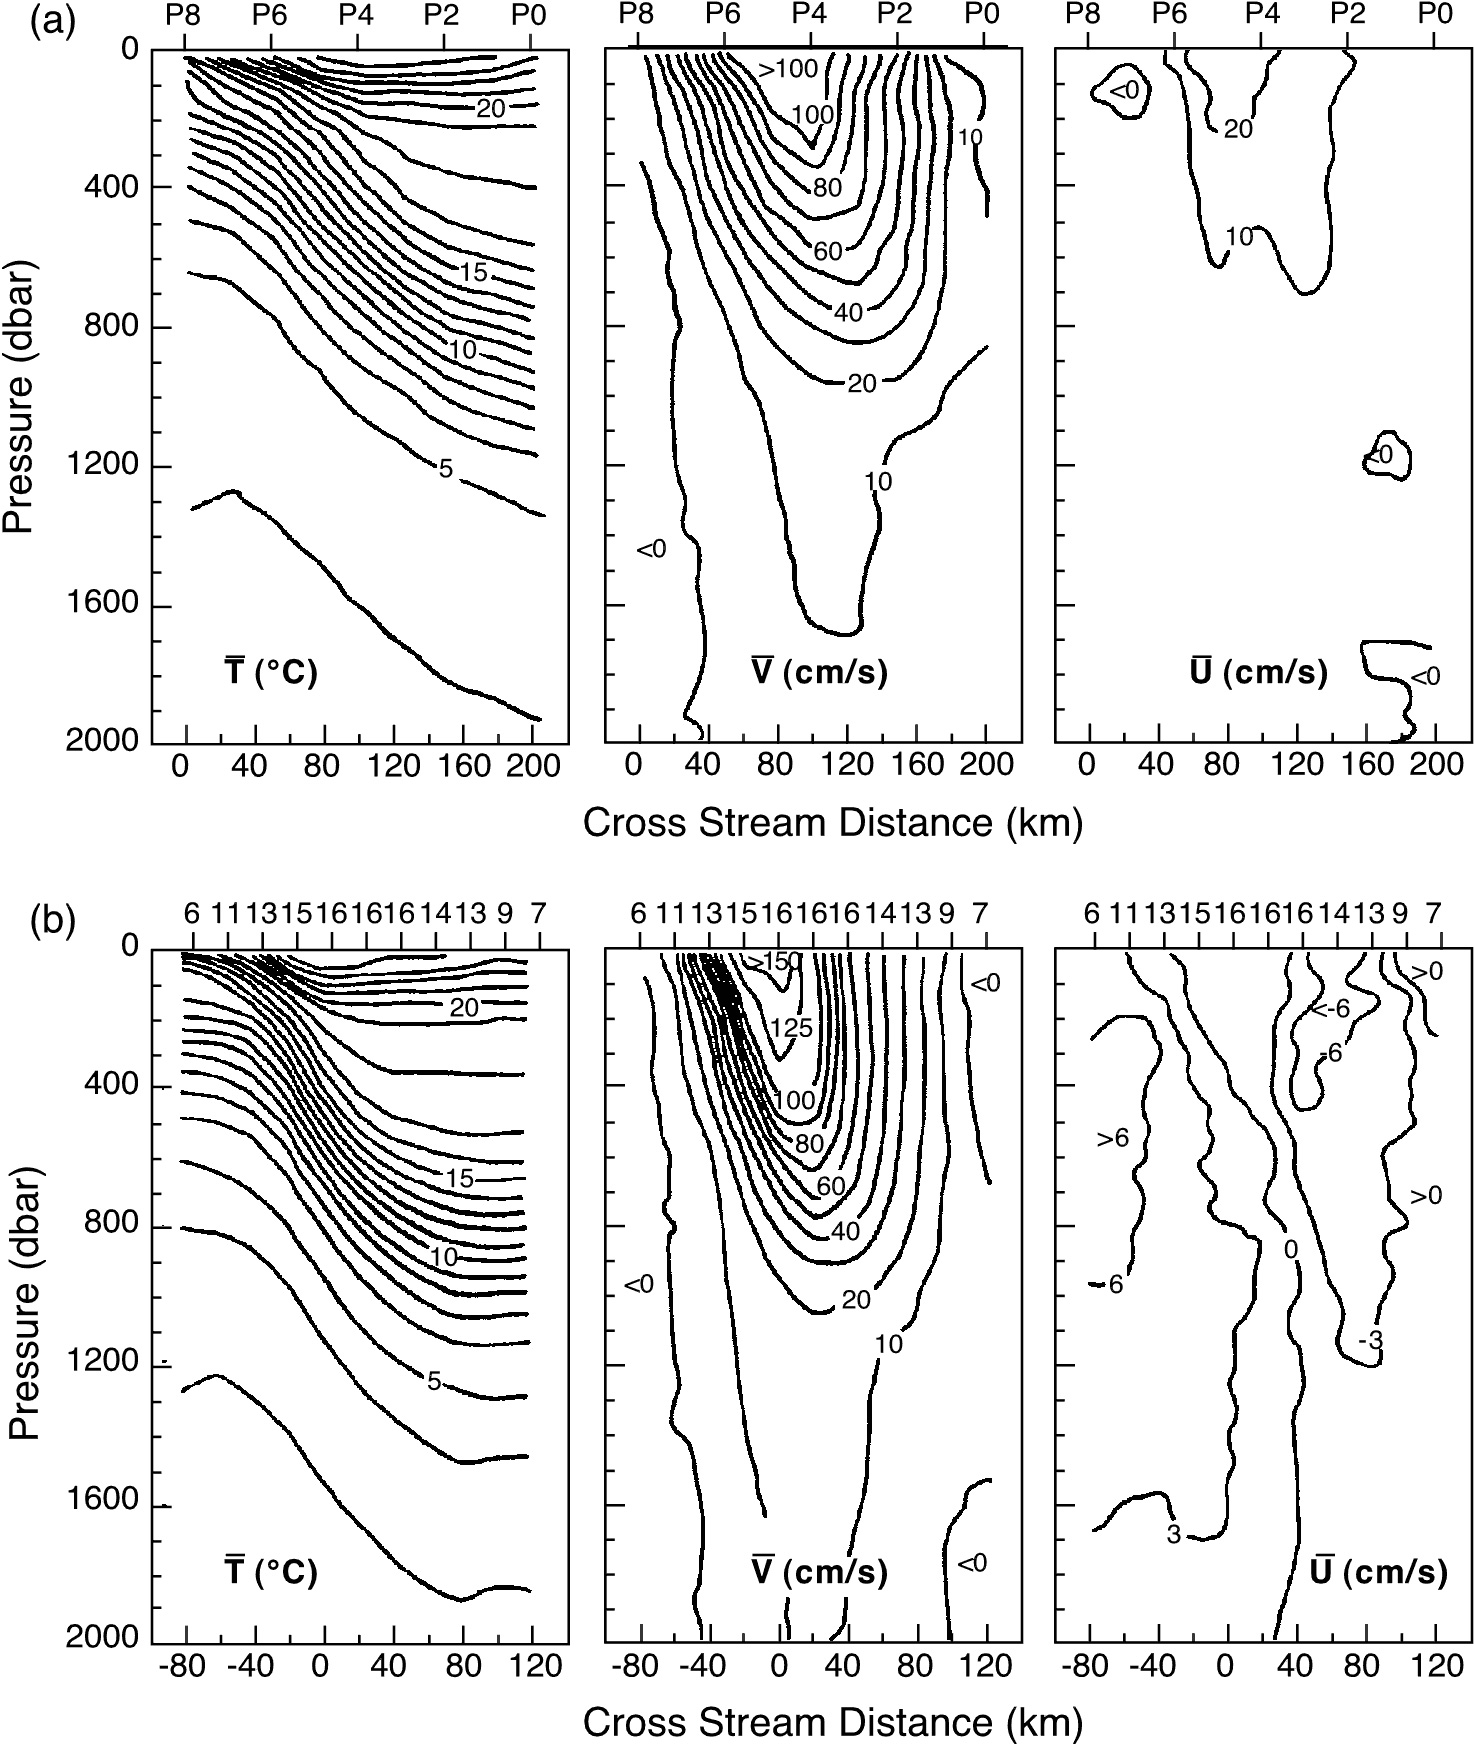 The Gulf Stream Gulfstream Wiring Diagram And Velocity Transects As A Function Of Cross Distance Depth From Surface To 2000 M Repeated Surveys Near 73w